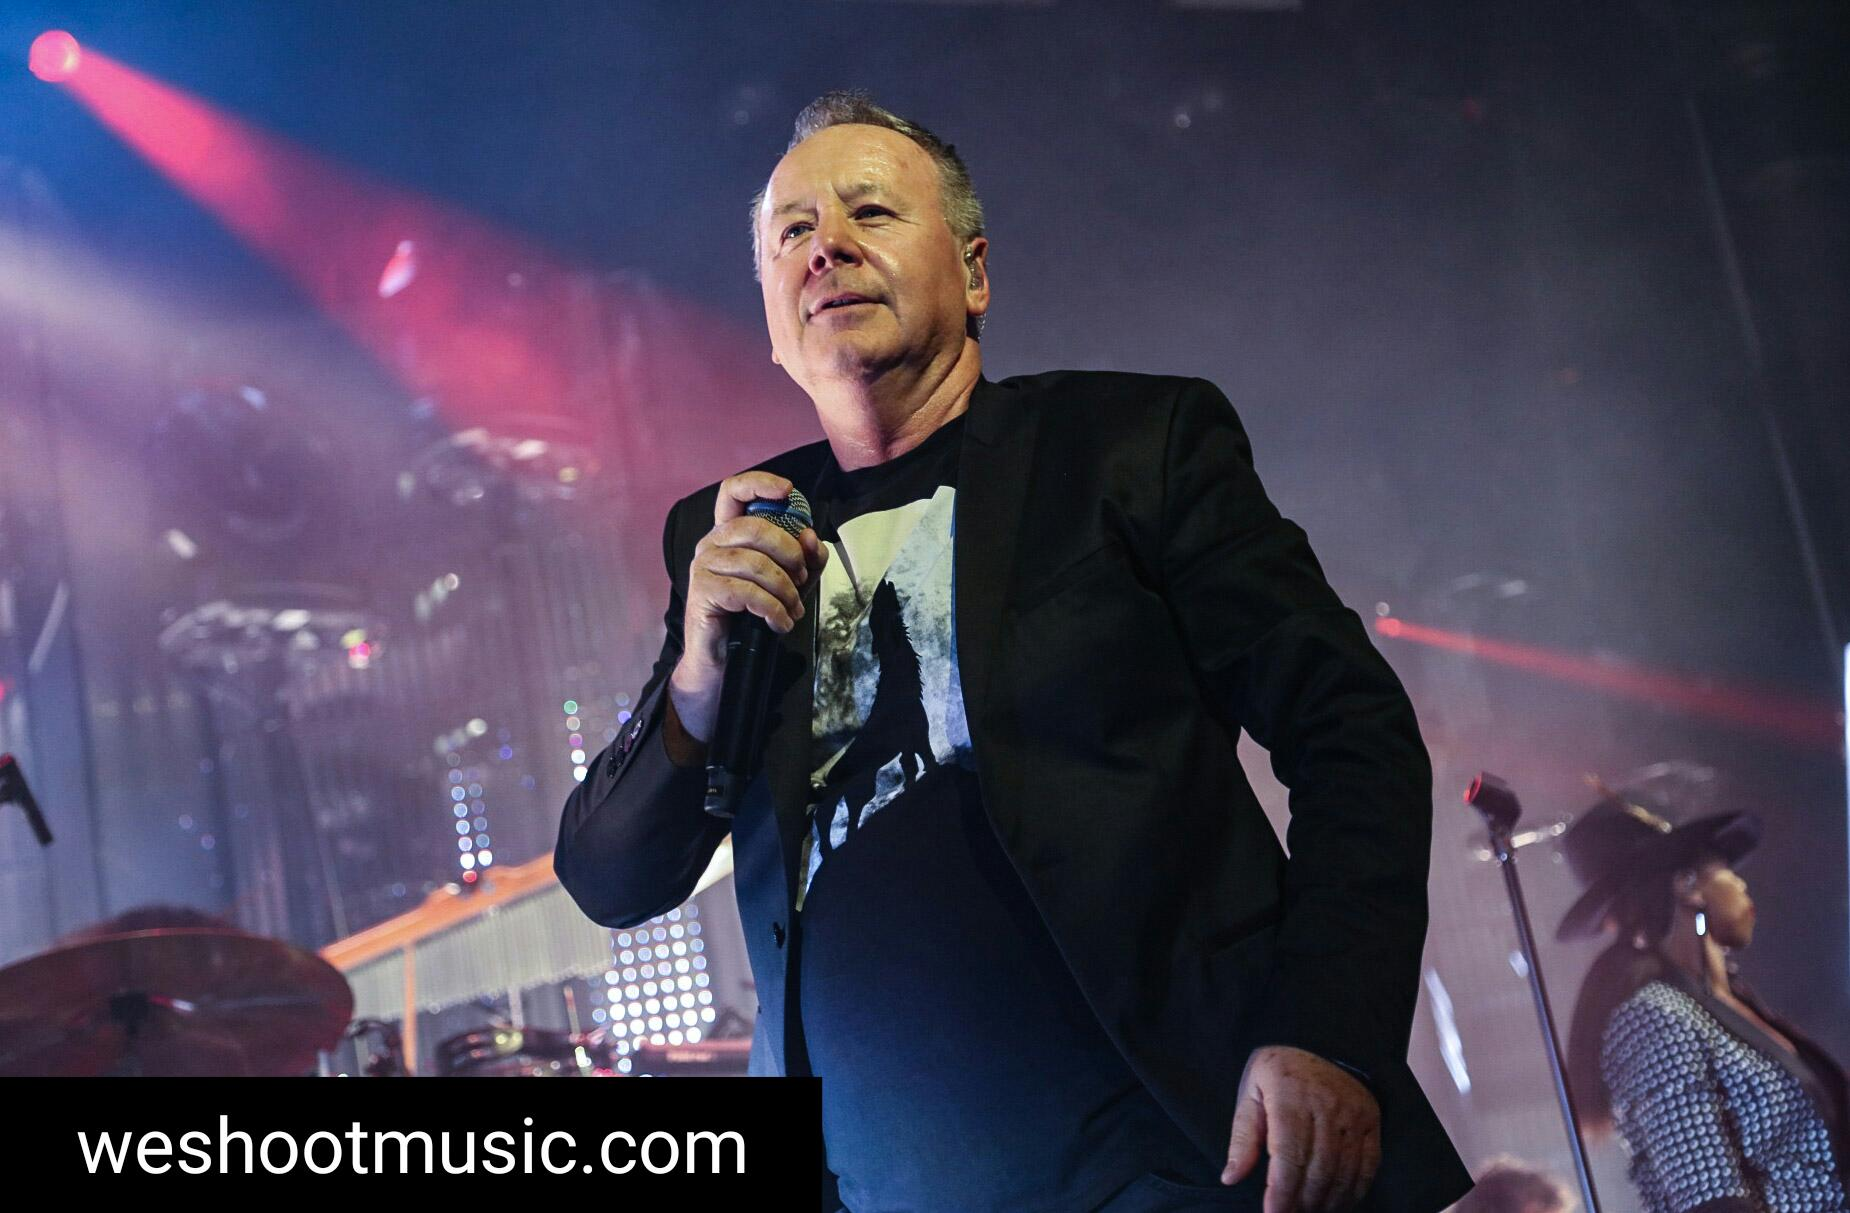 Simple Minds at the Roundhouse, London